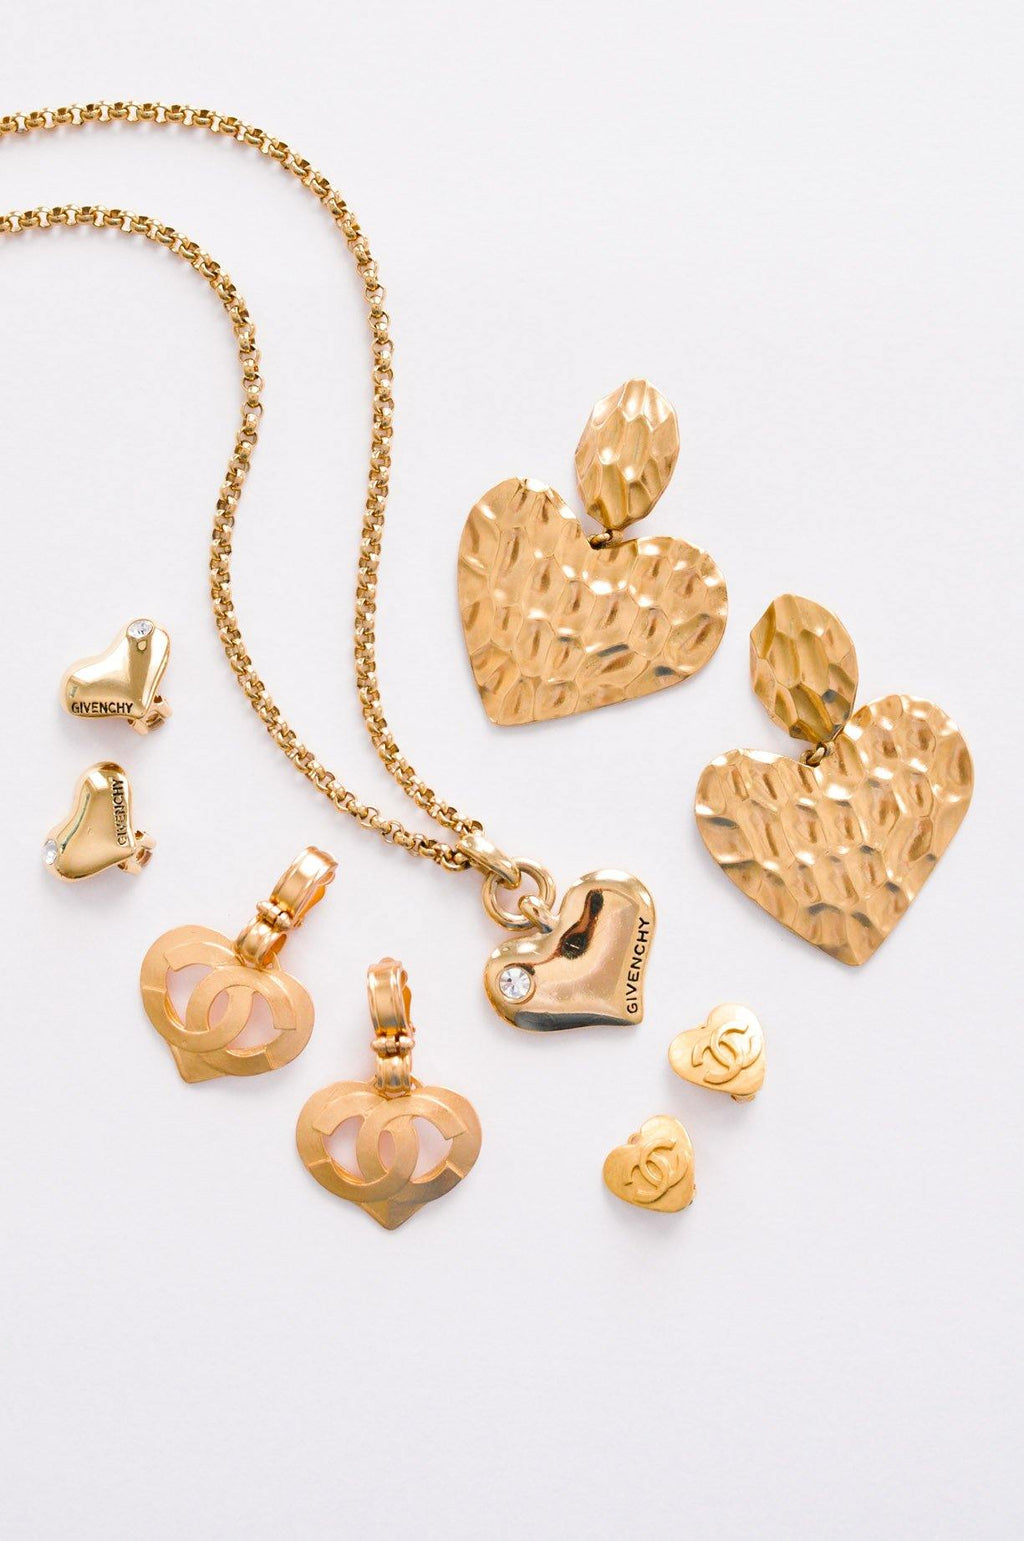 Givenchy Heart Pendant Necklace